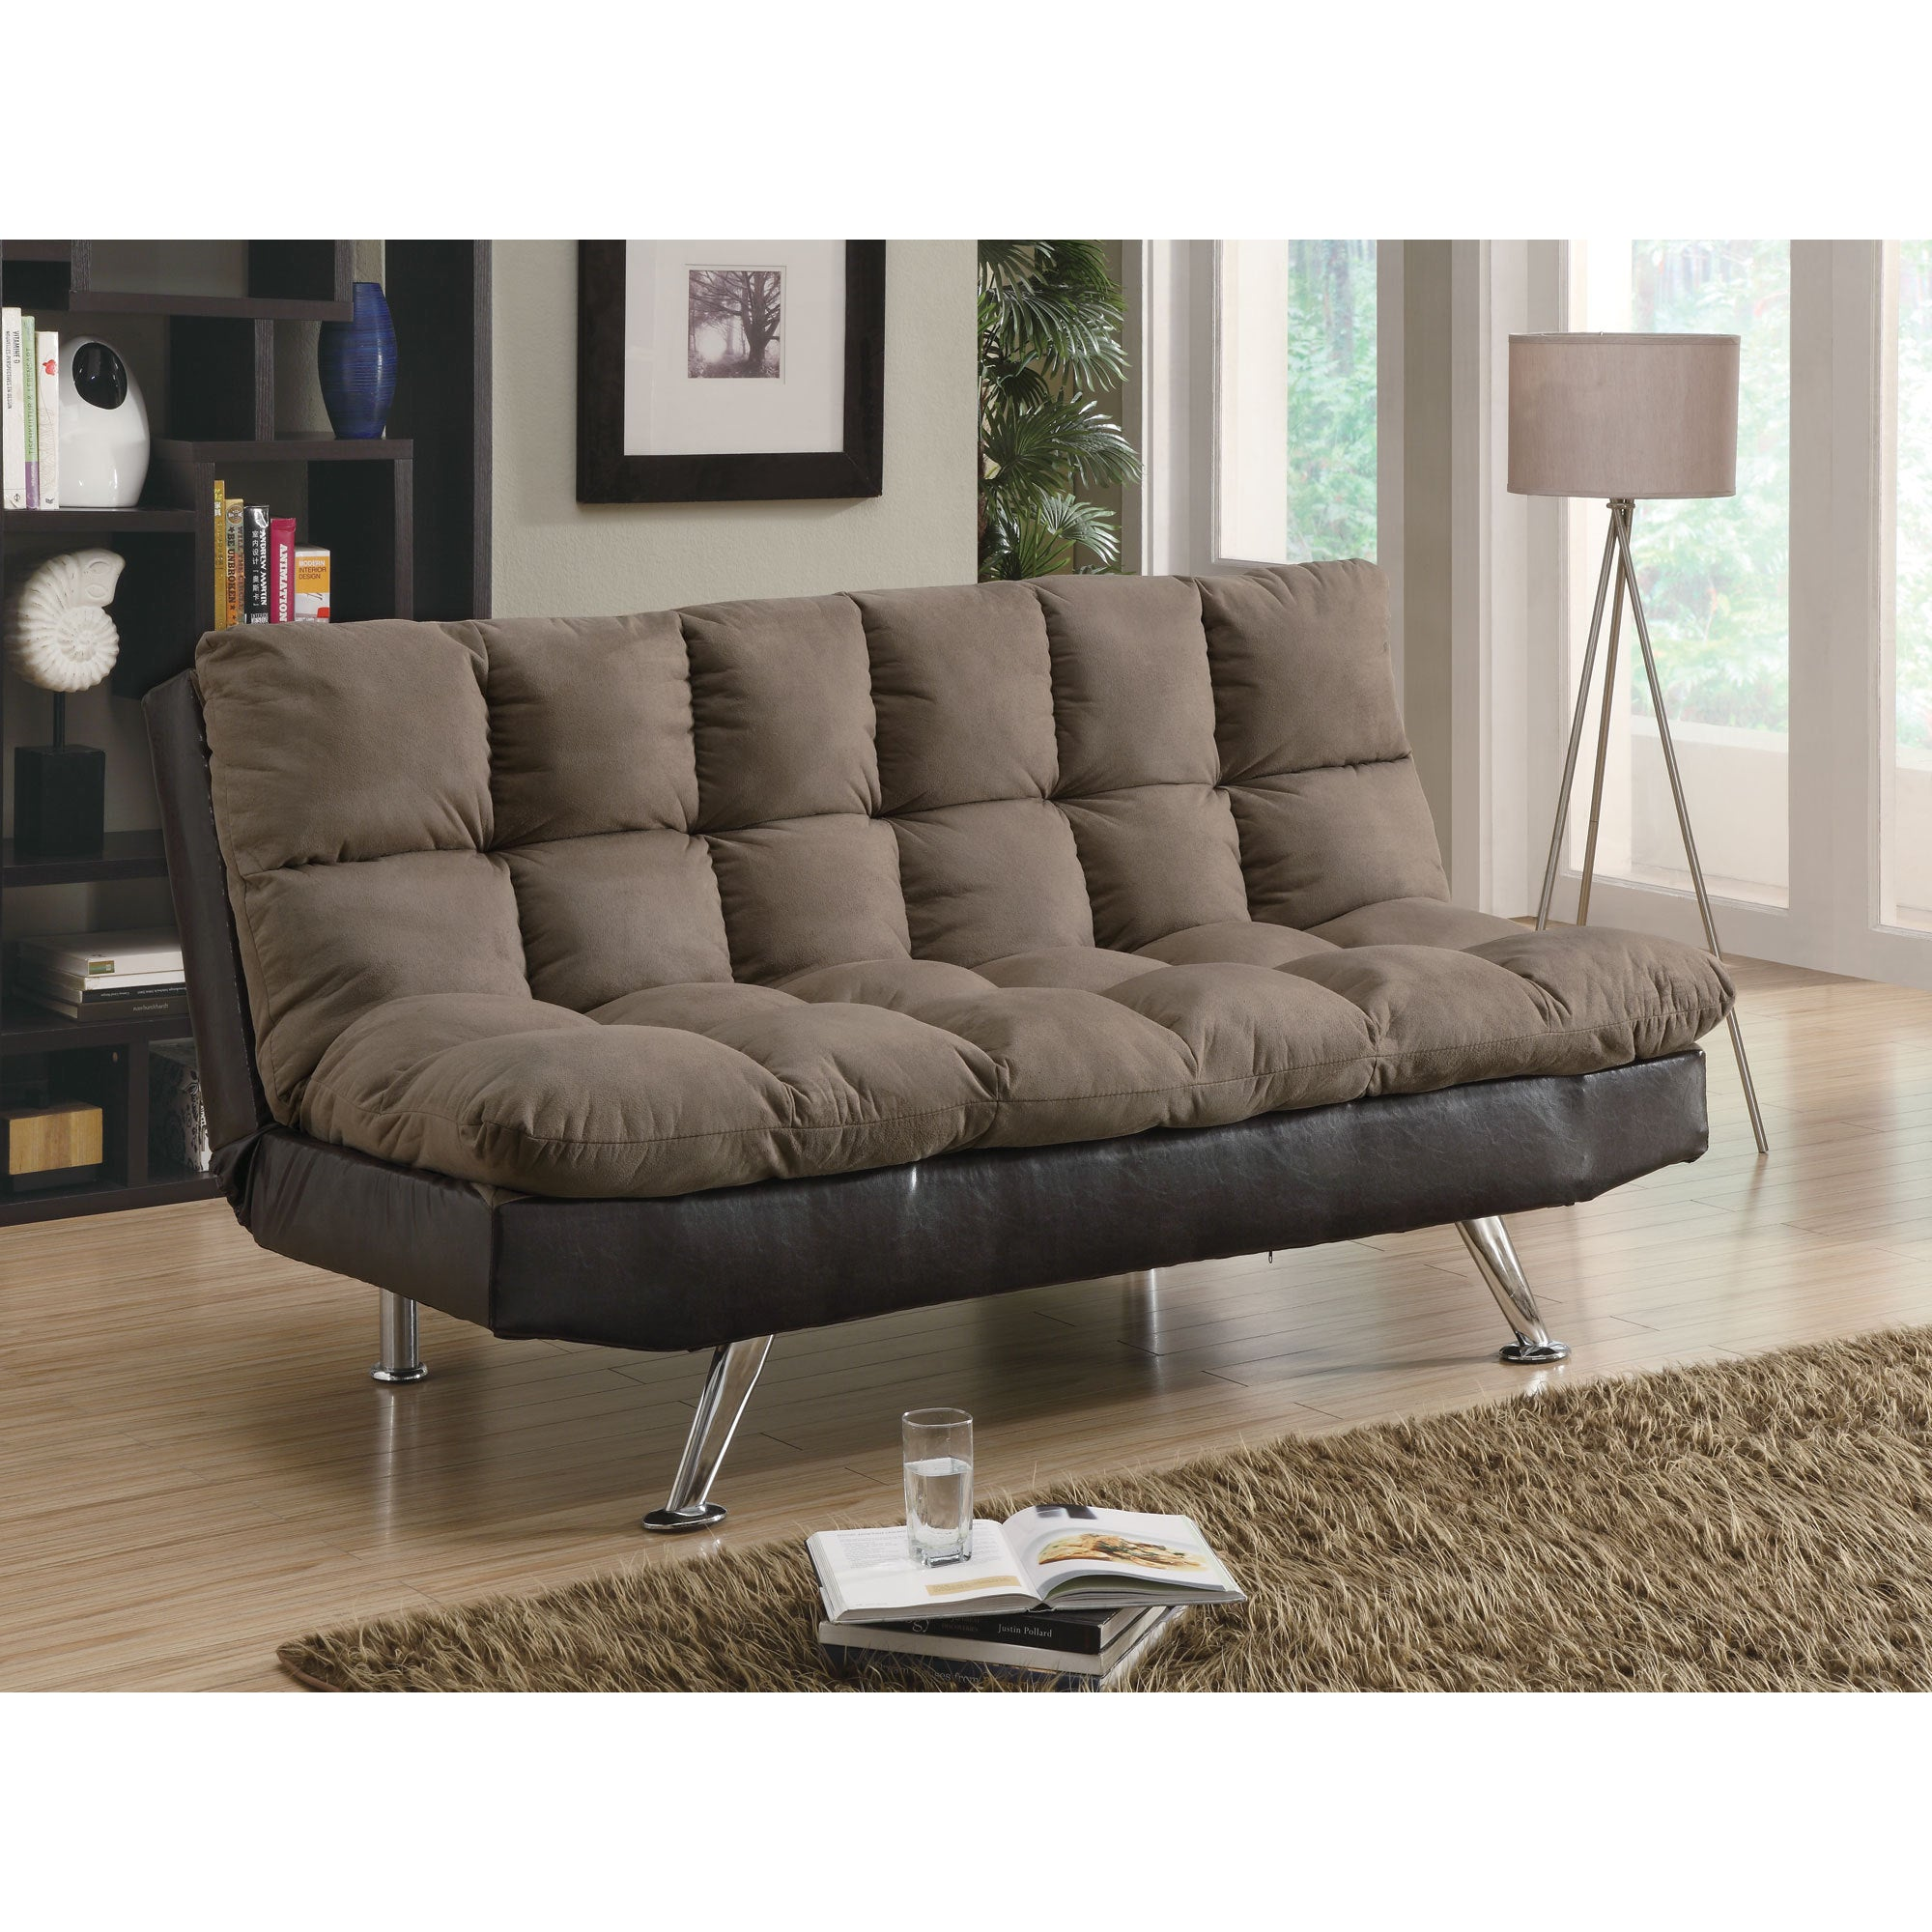 Coaster Furniture Two-tone Brown Microfiber and Vinyl Sof...